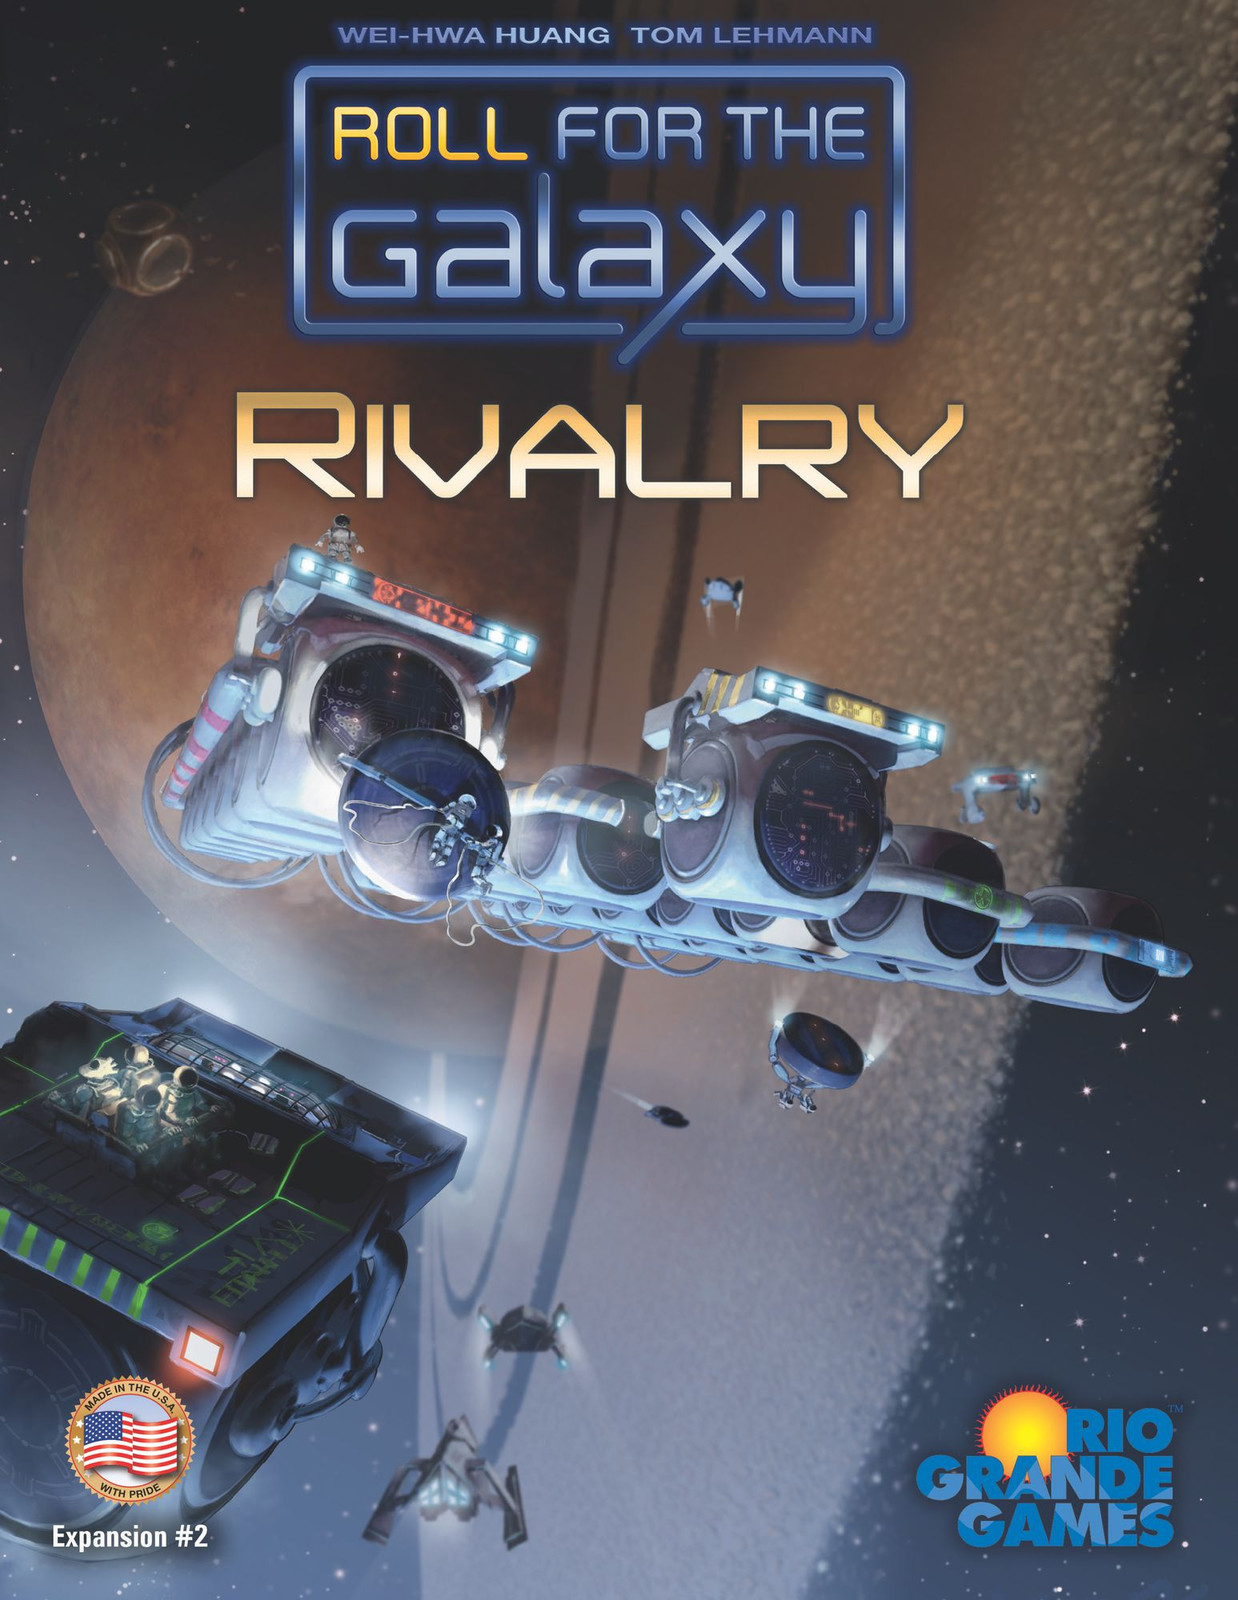 Roll for the Galaxy - Rivalry image